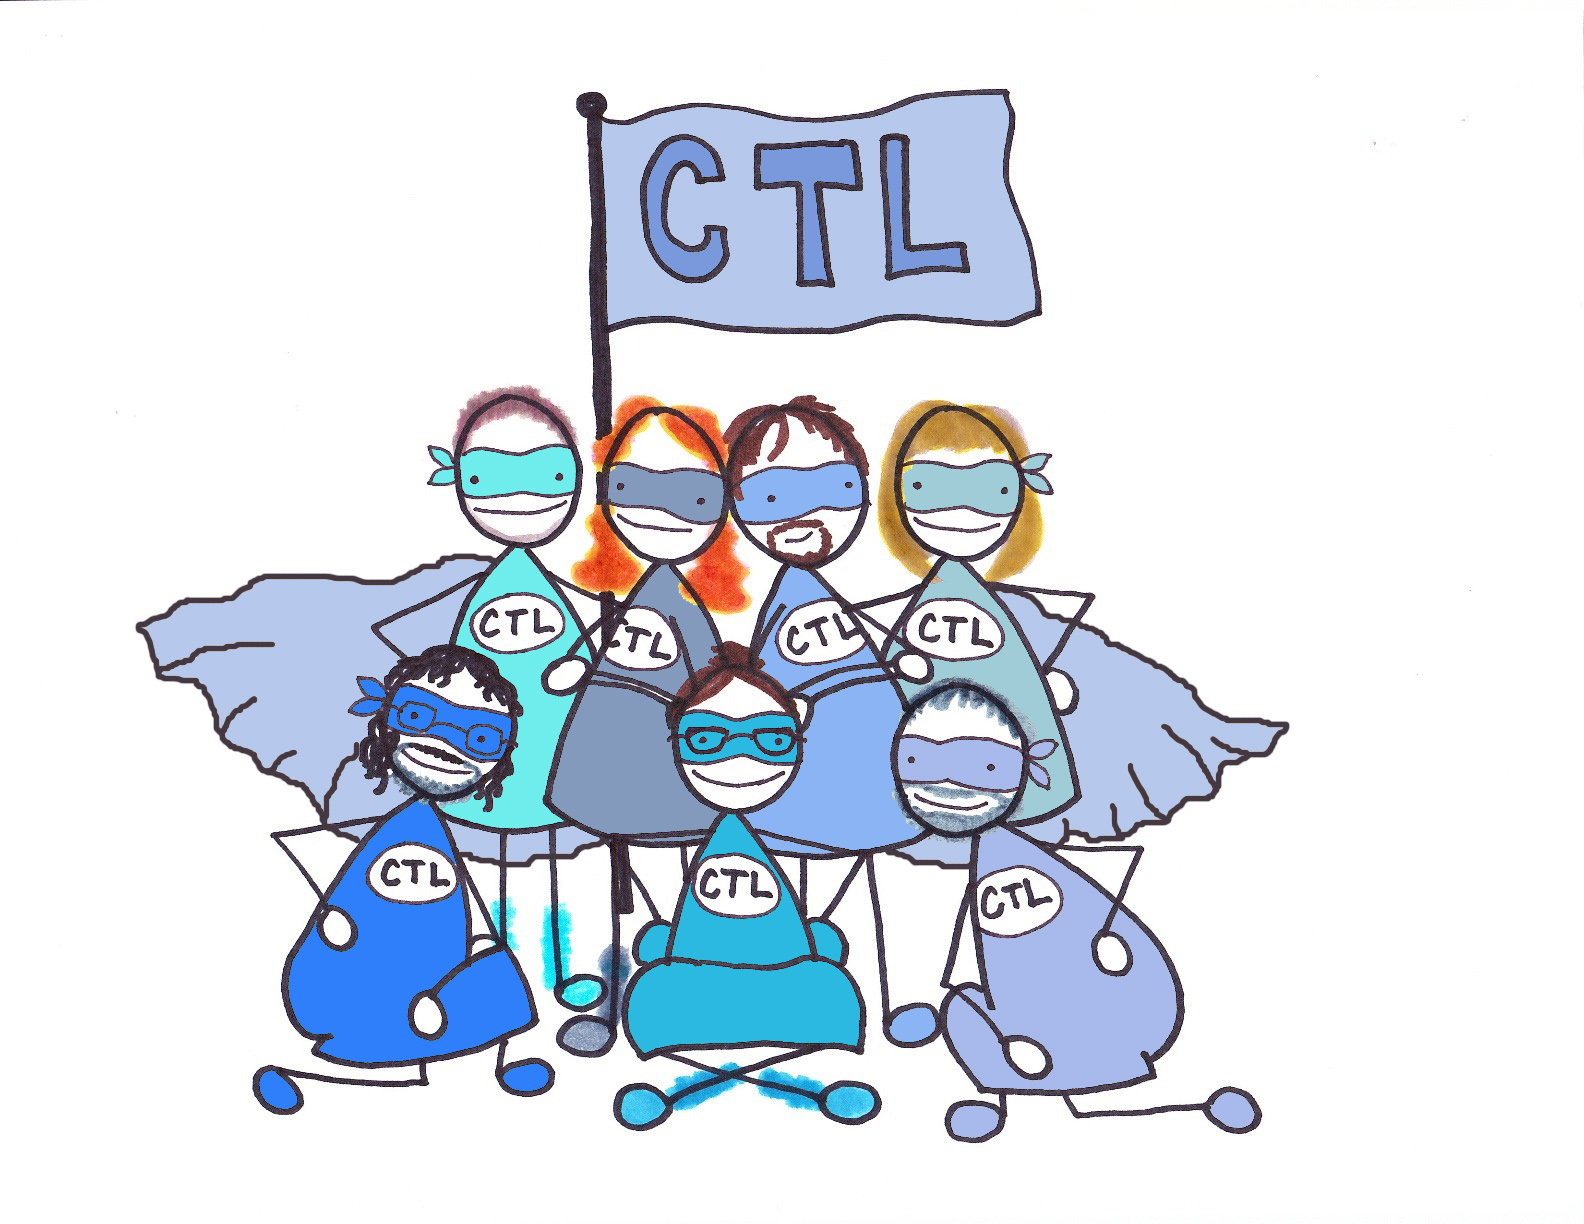 Centre for Teaching and Learning team depicted as superheroes wearing capes and masks